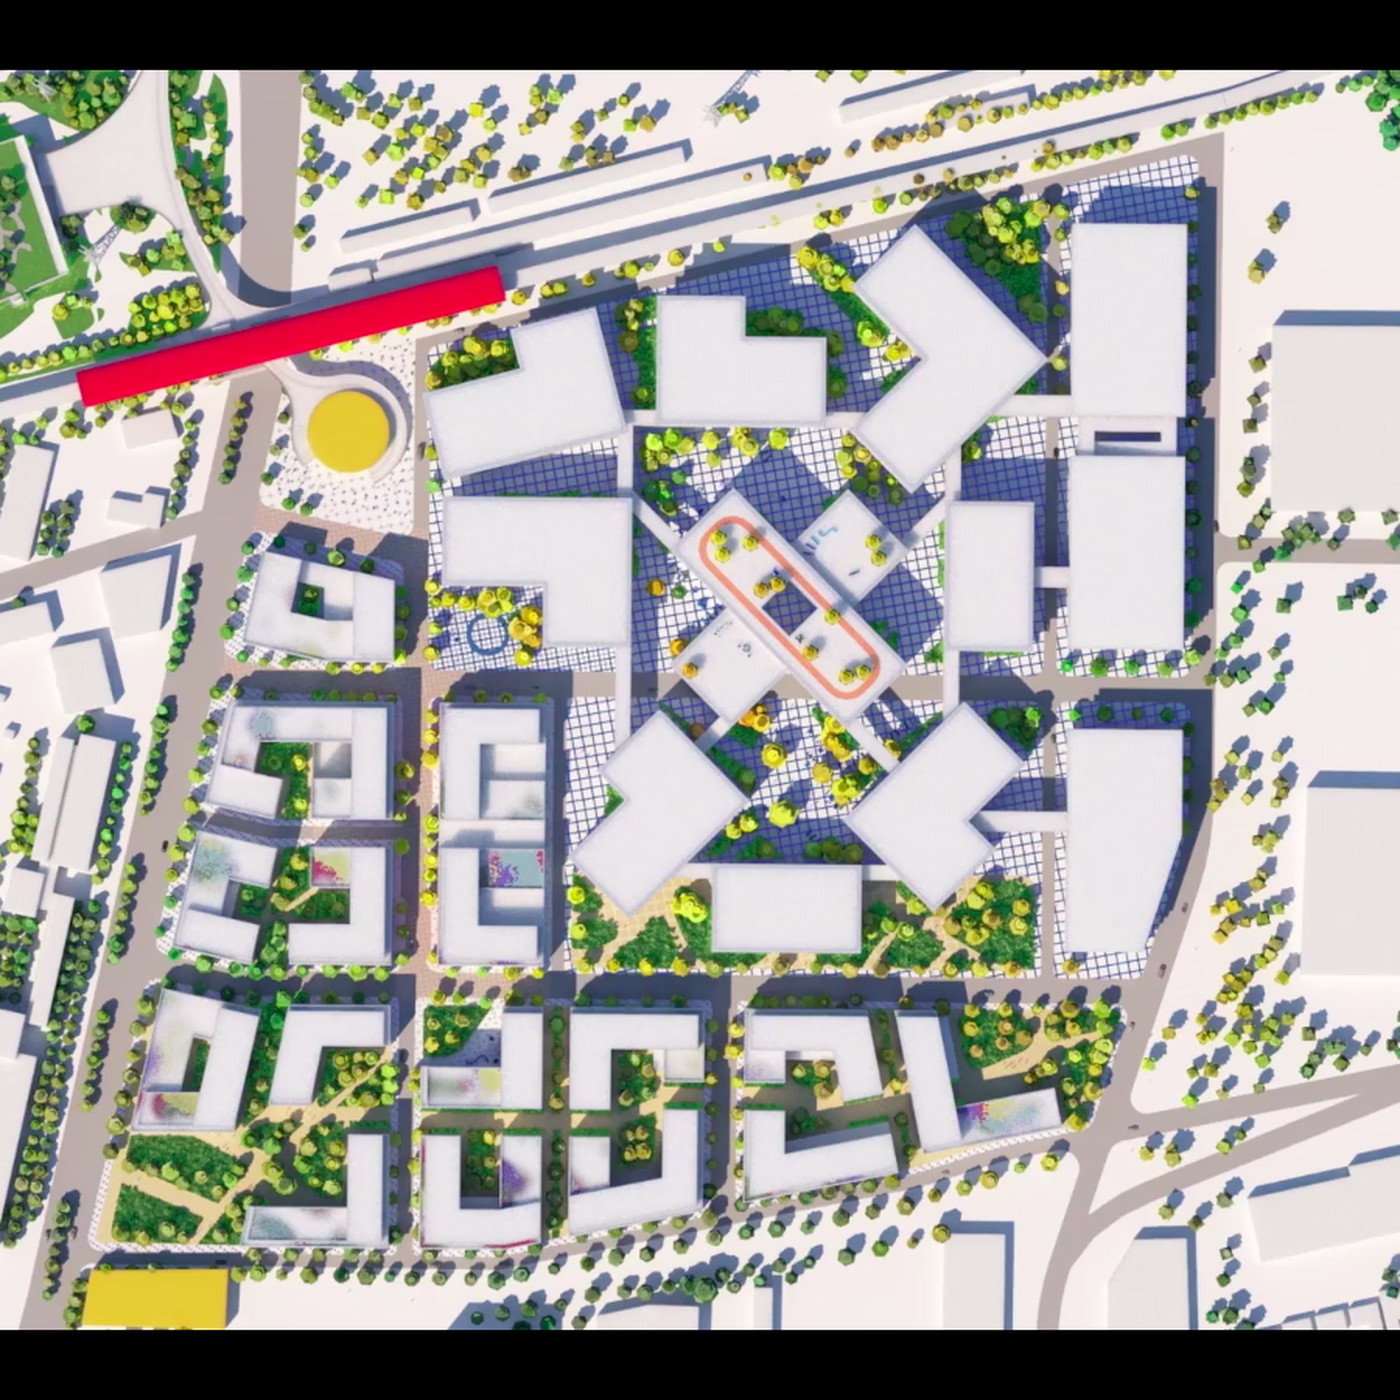 Facebook is building a new campus that includes 1,500 ...